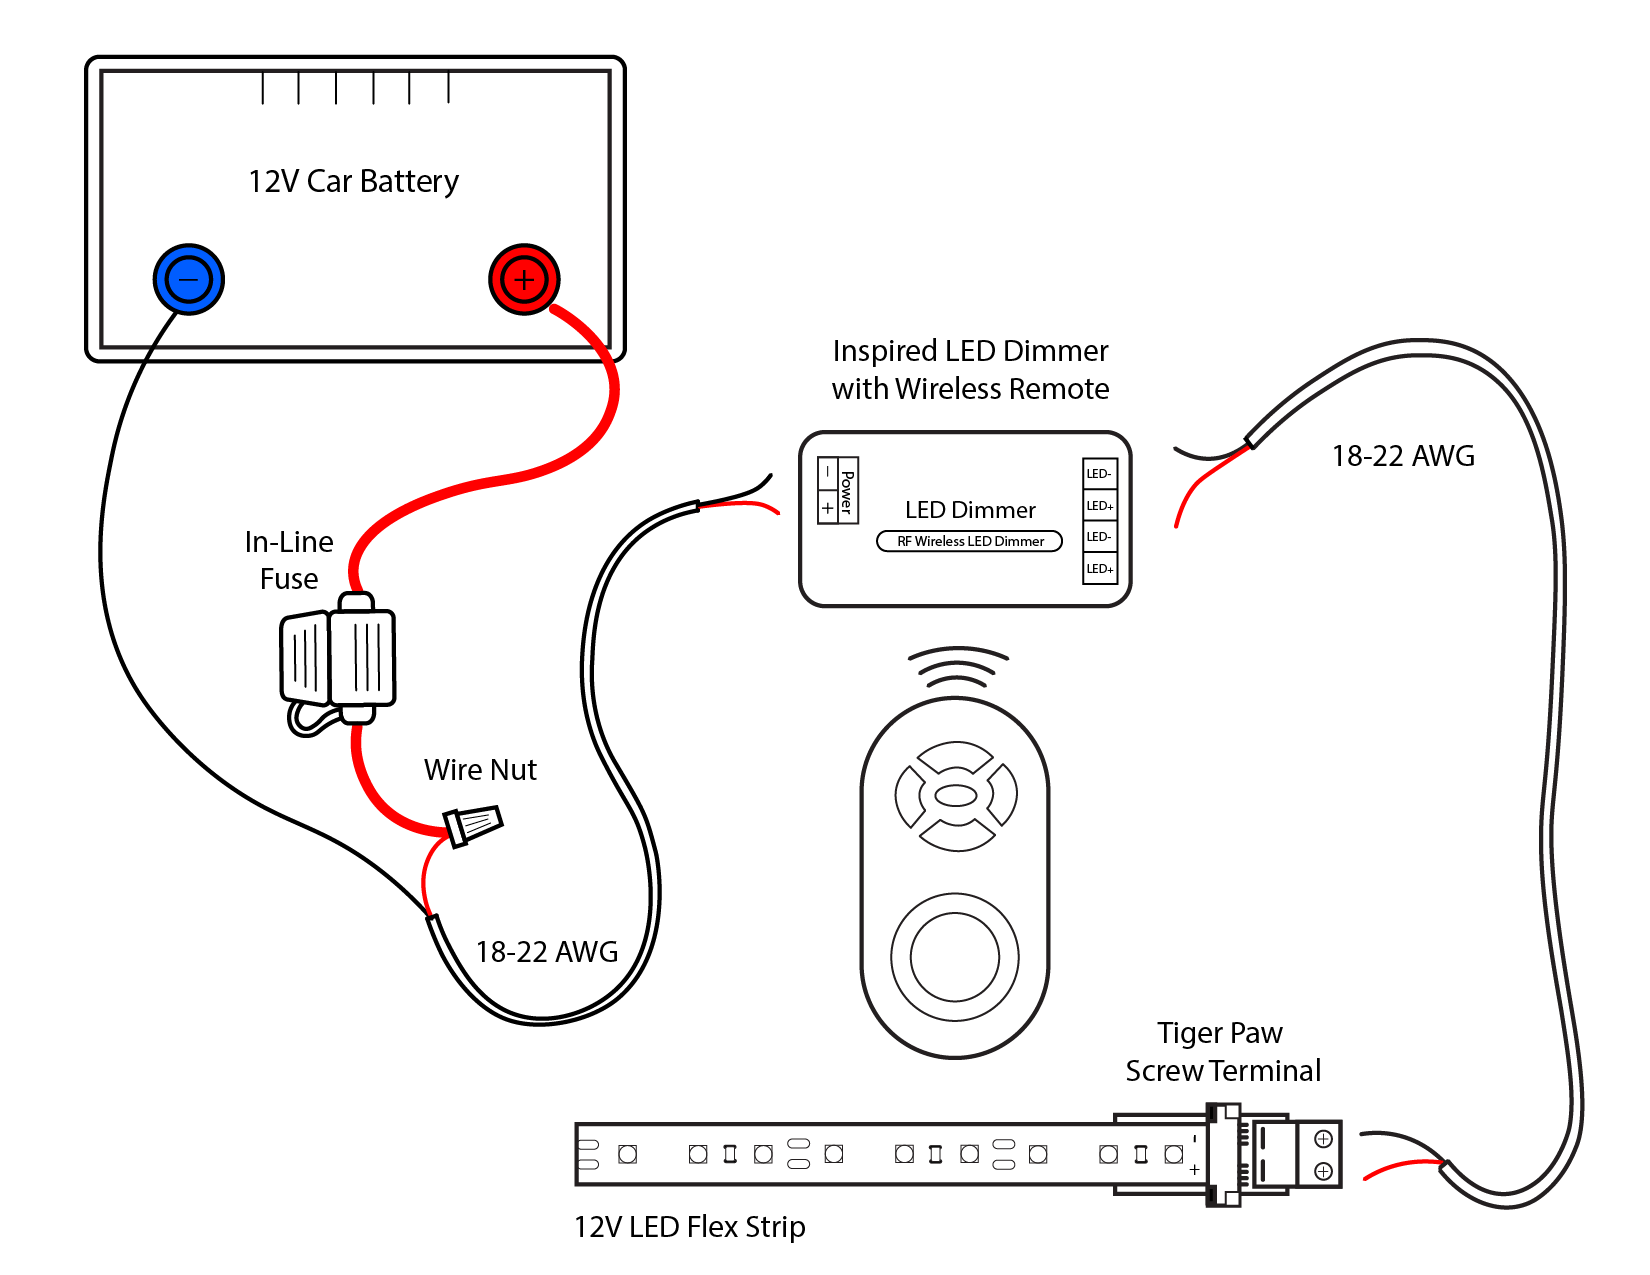 [DIAGRAM] Club Car Wiring Diagram 12v Light FULL Version